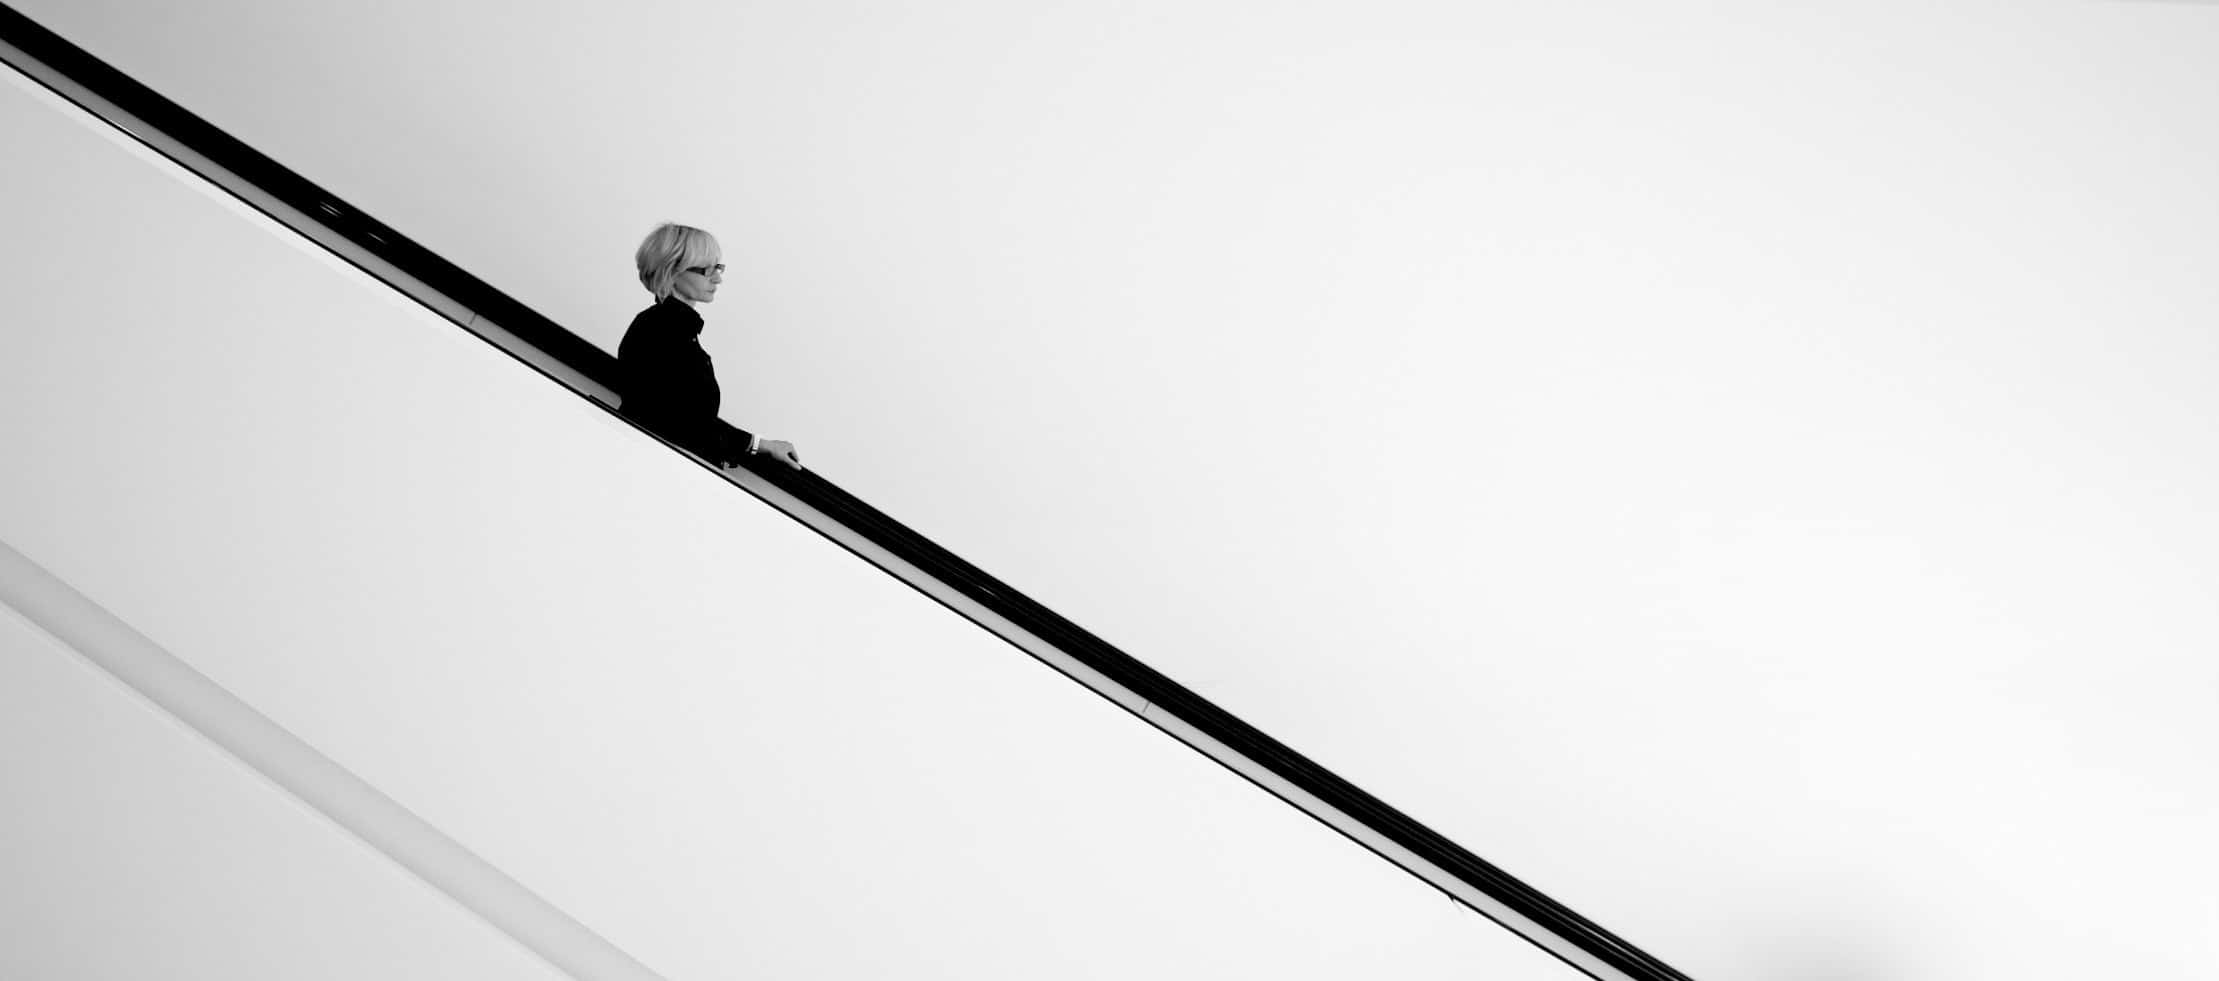 Photo of an older woman coming down an escalator, all white negative space around her.